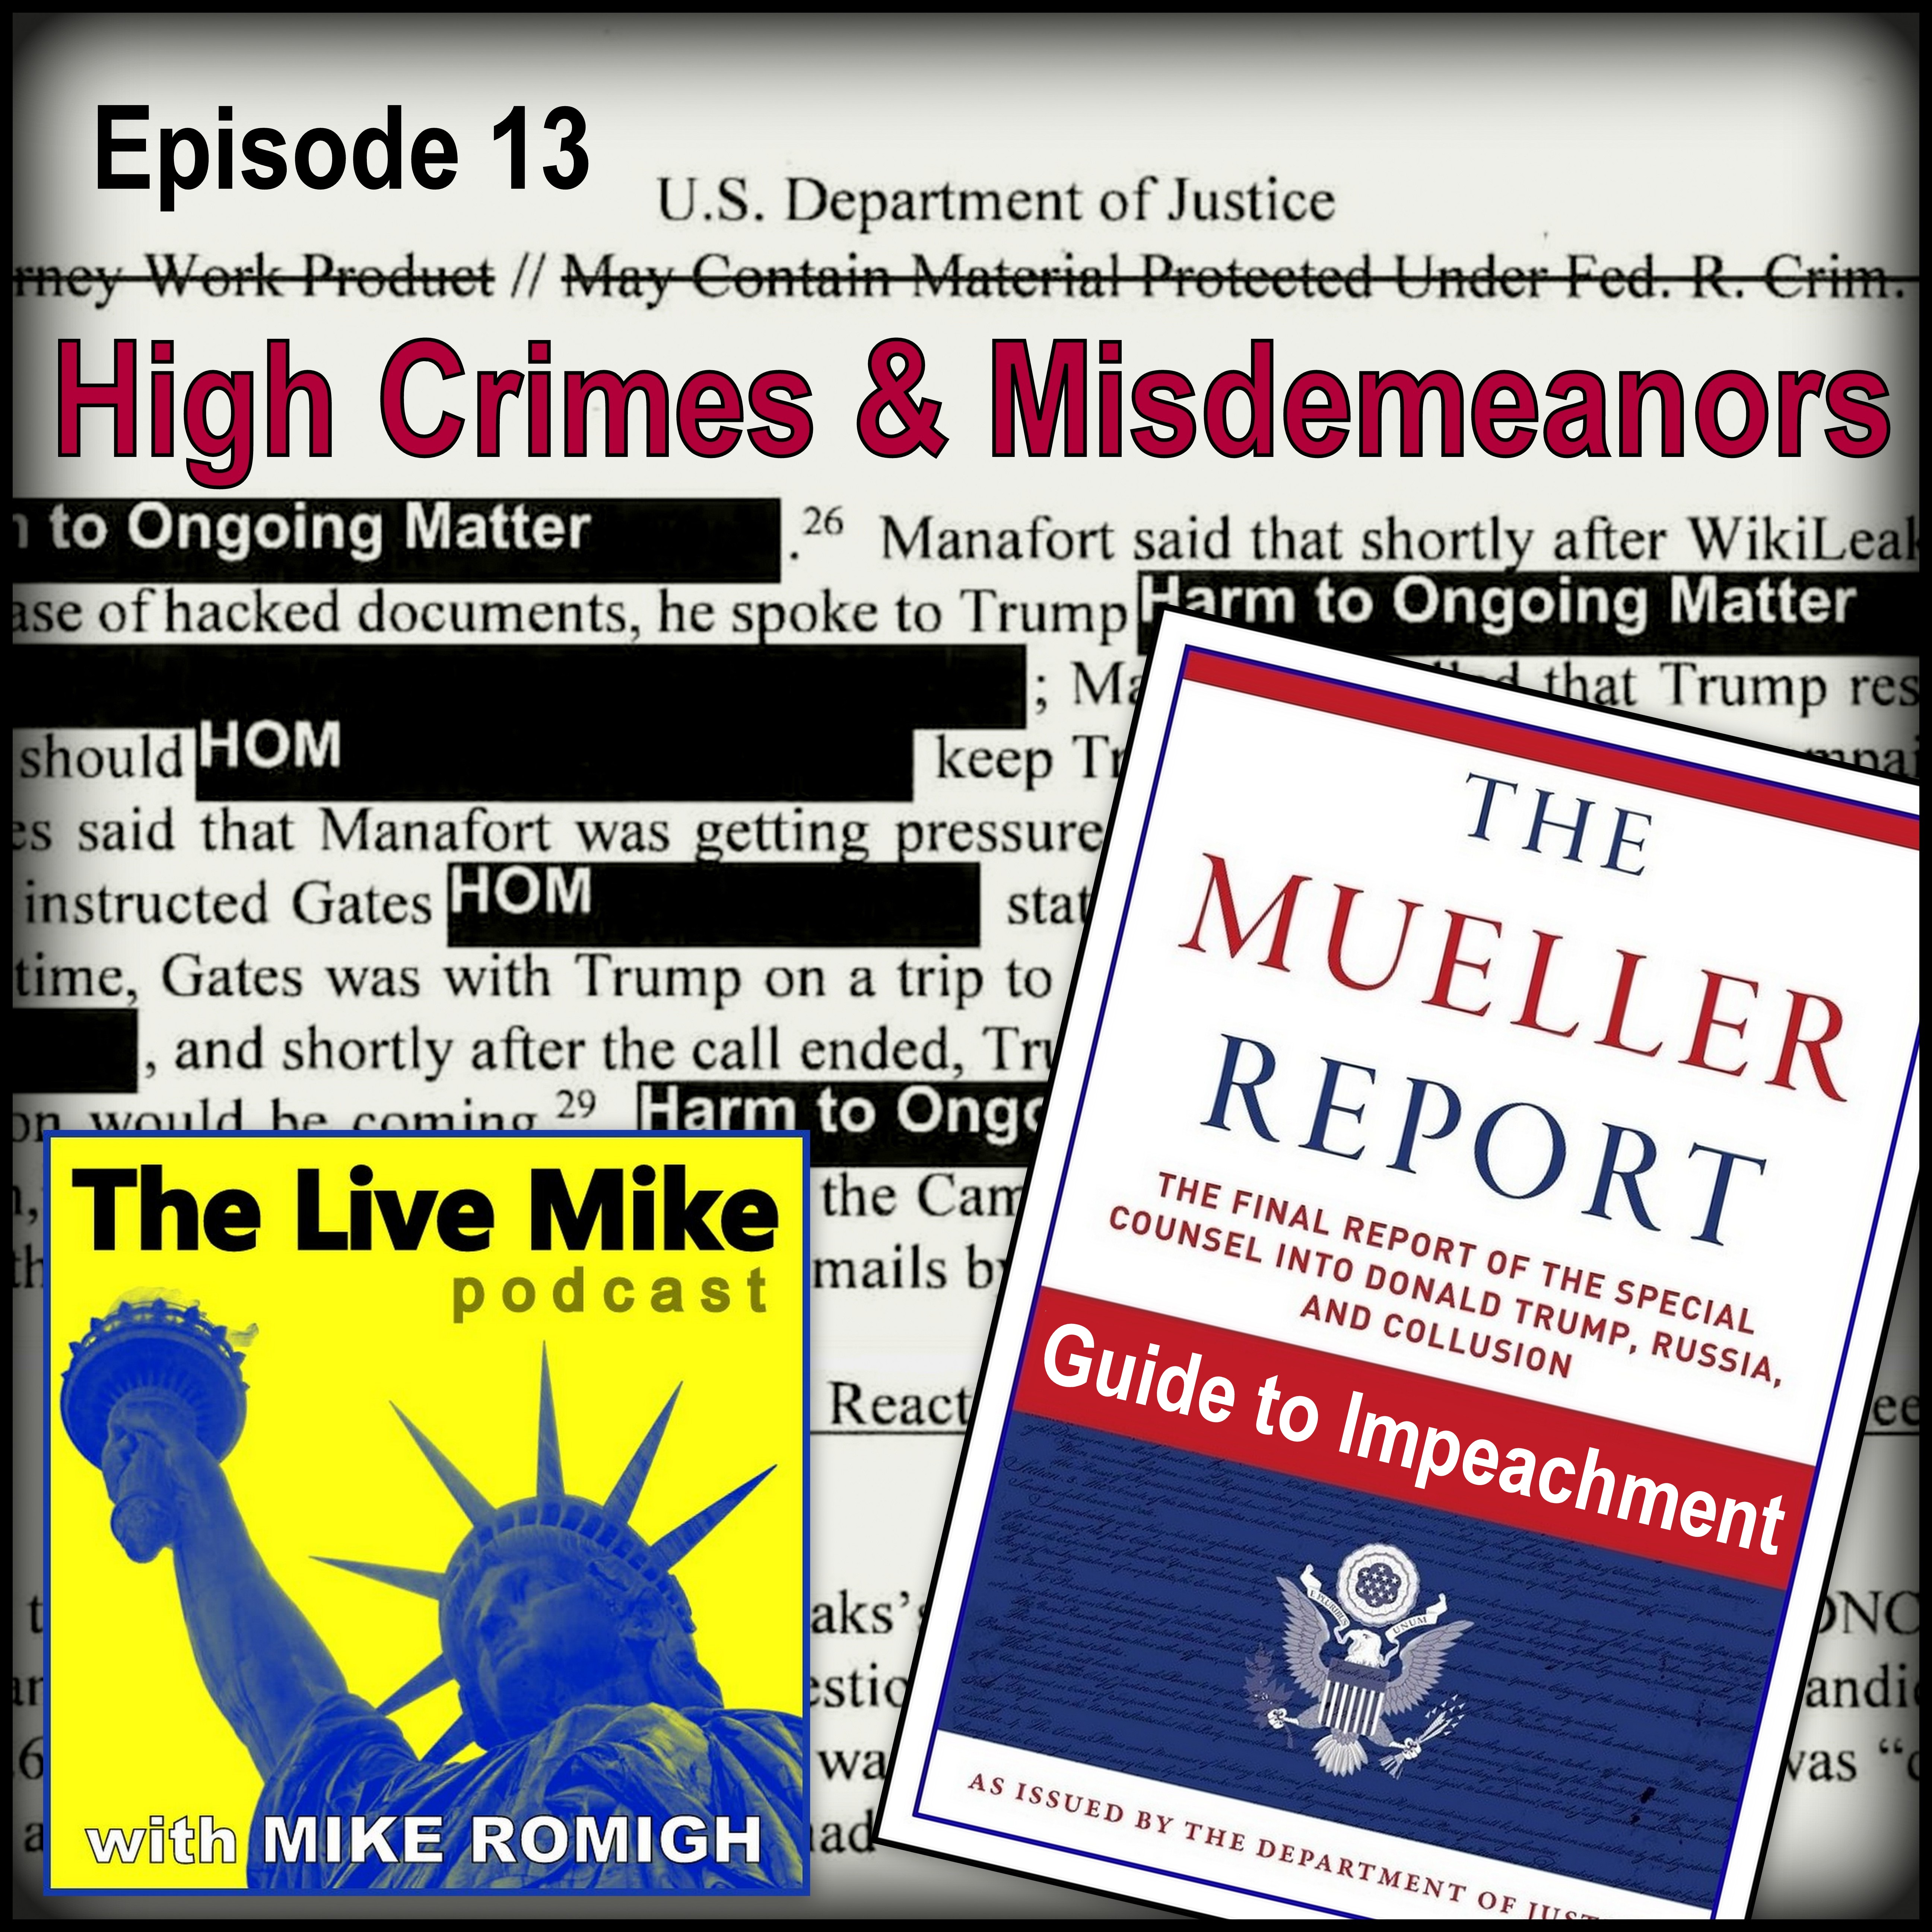 The Live Mike Podcast (Ep13): High Crimes